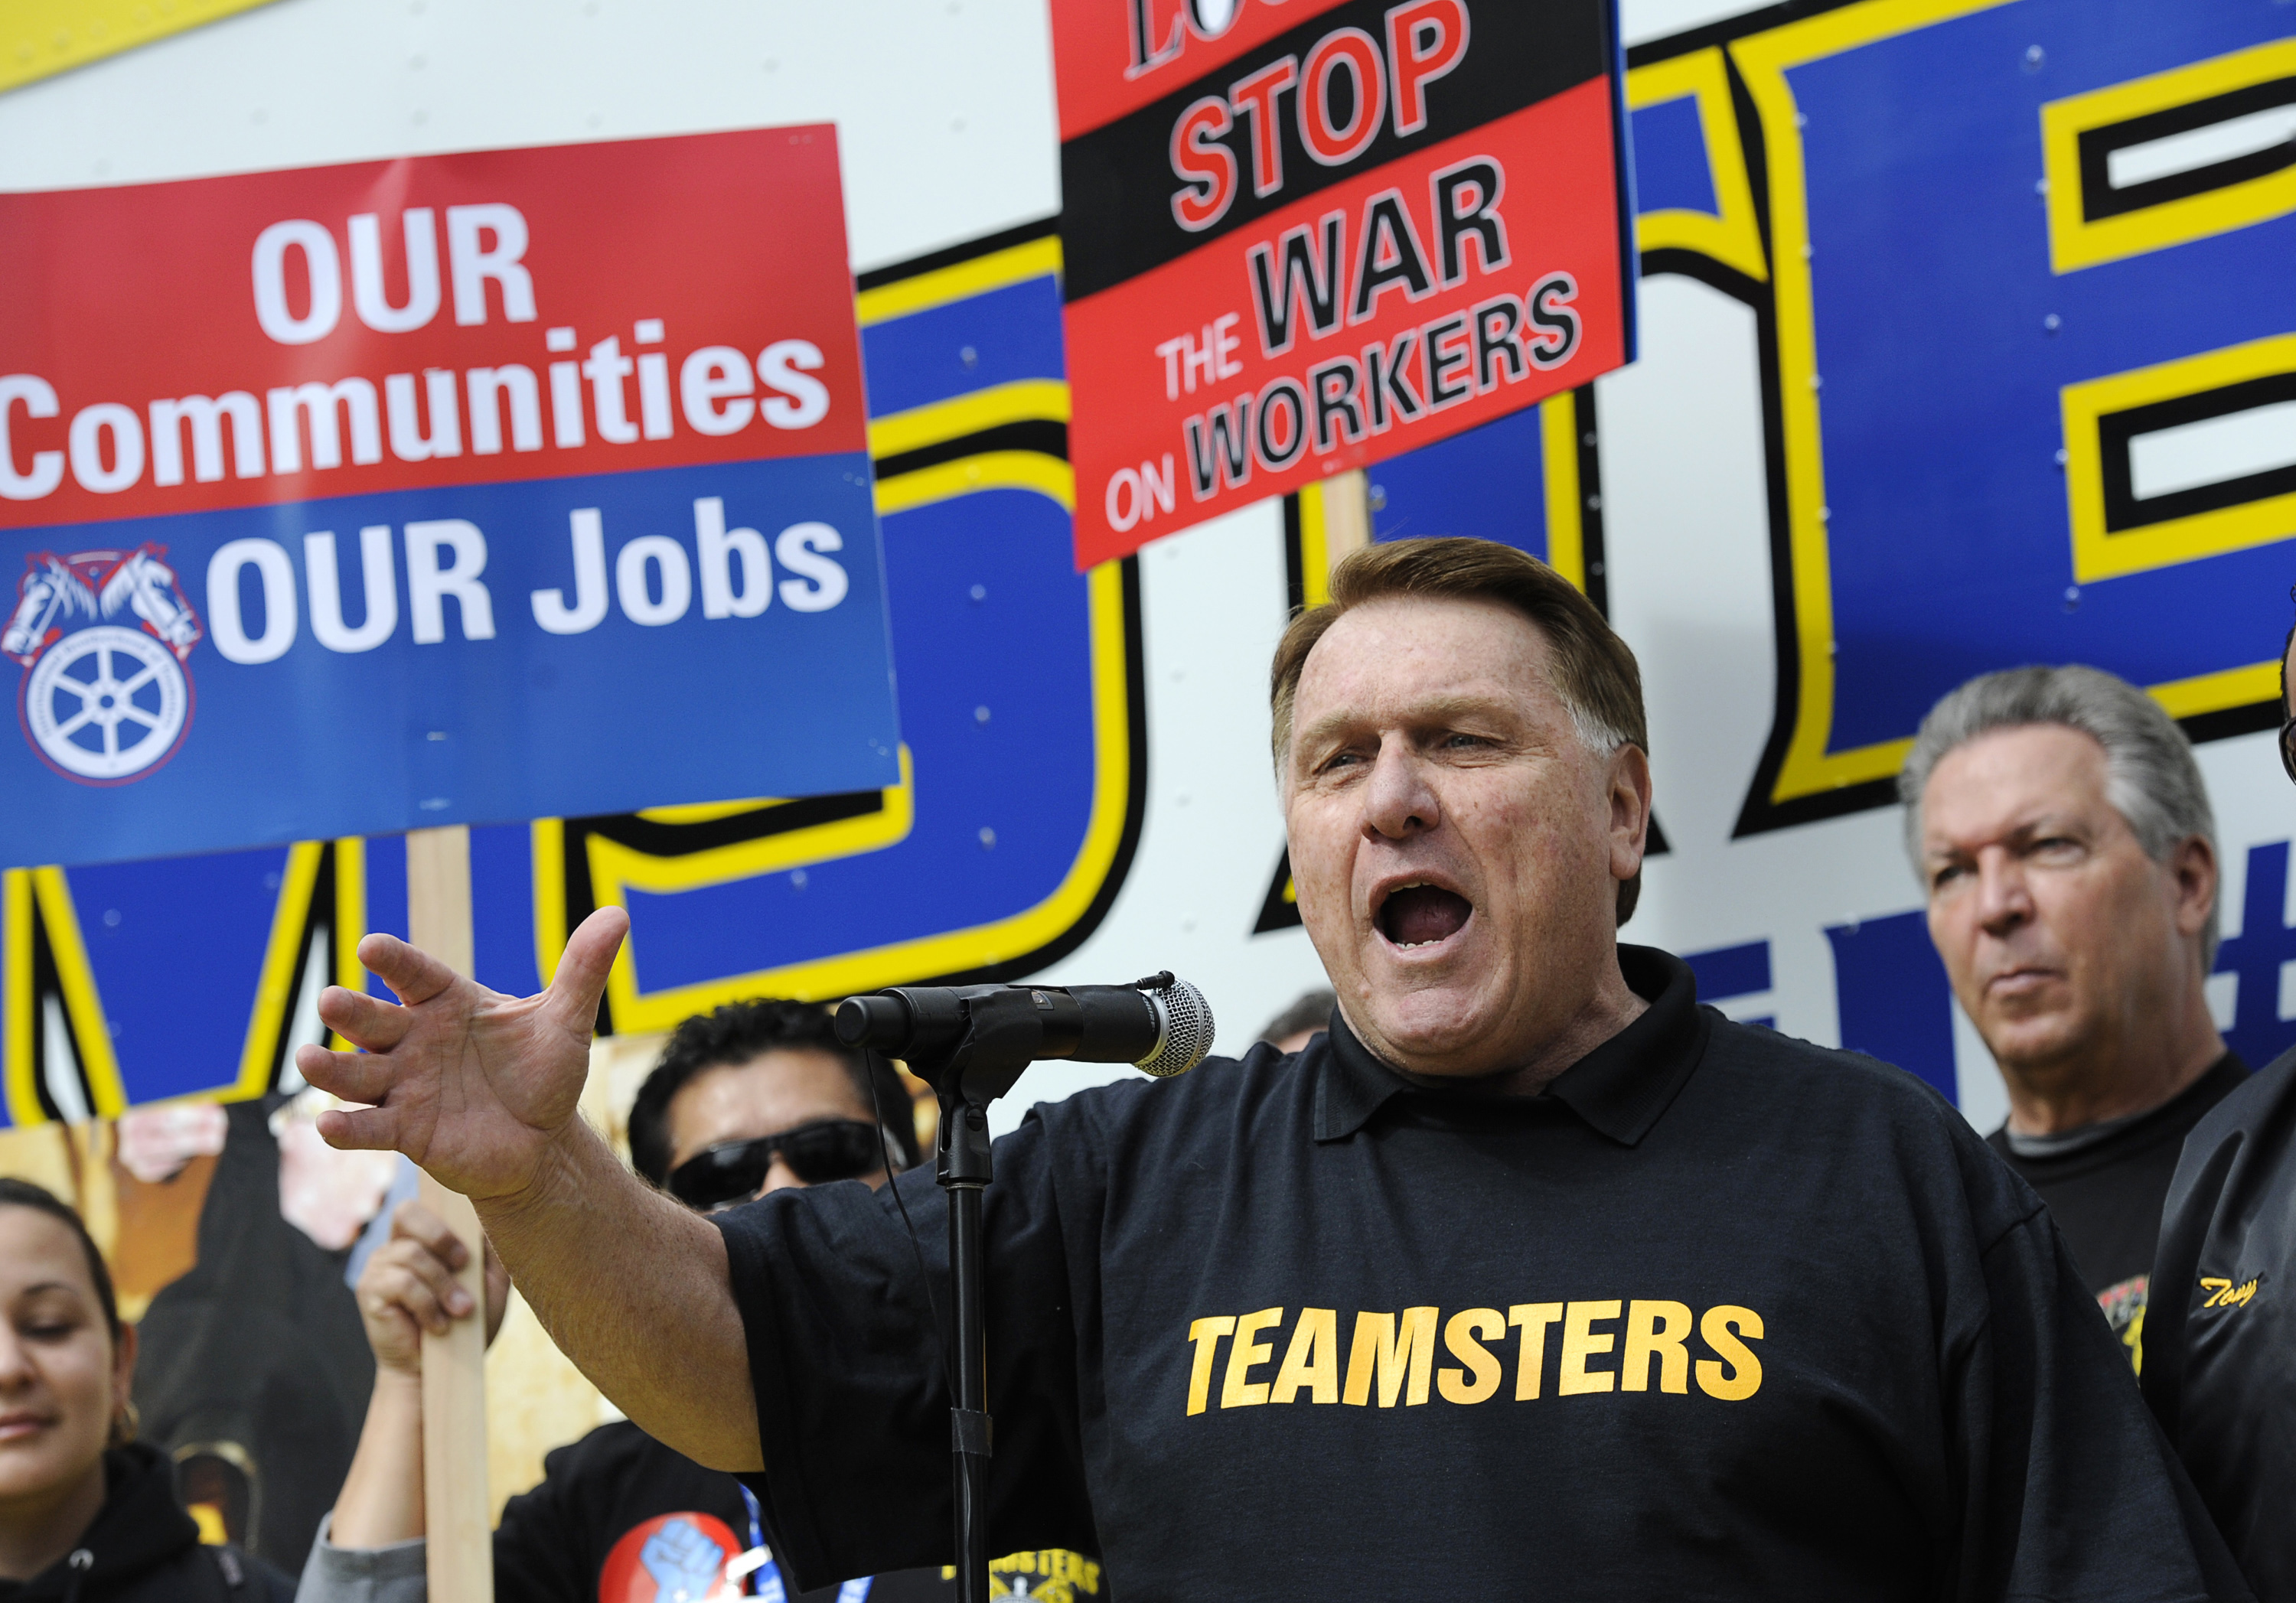 Los Angeles County Federation of Labor, Teamsters General President James Hoffa Jr. speaks during a march and rally by labor union supporters in Los Angeles March 26, 2011. REUTERS/Phil McCarten